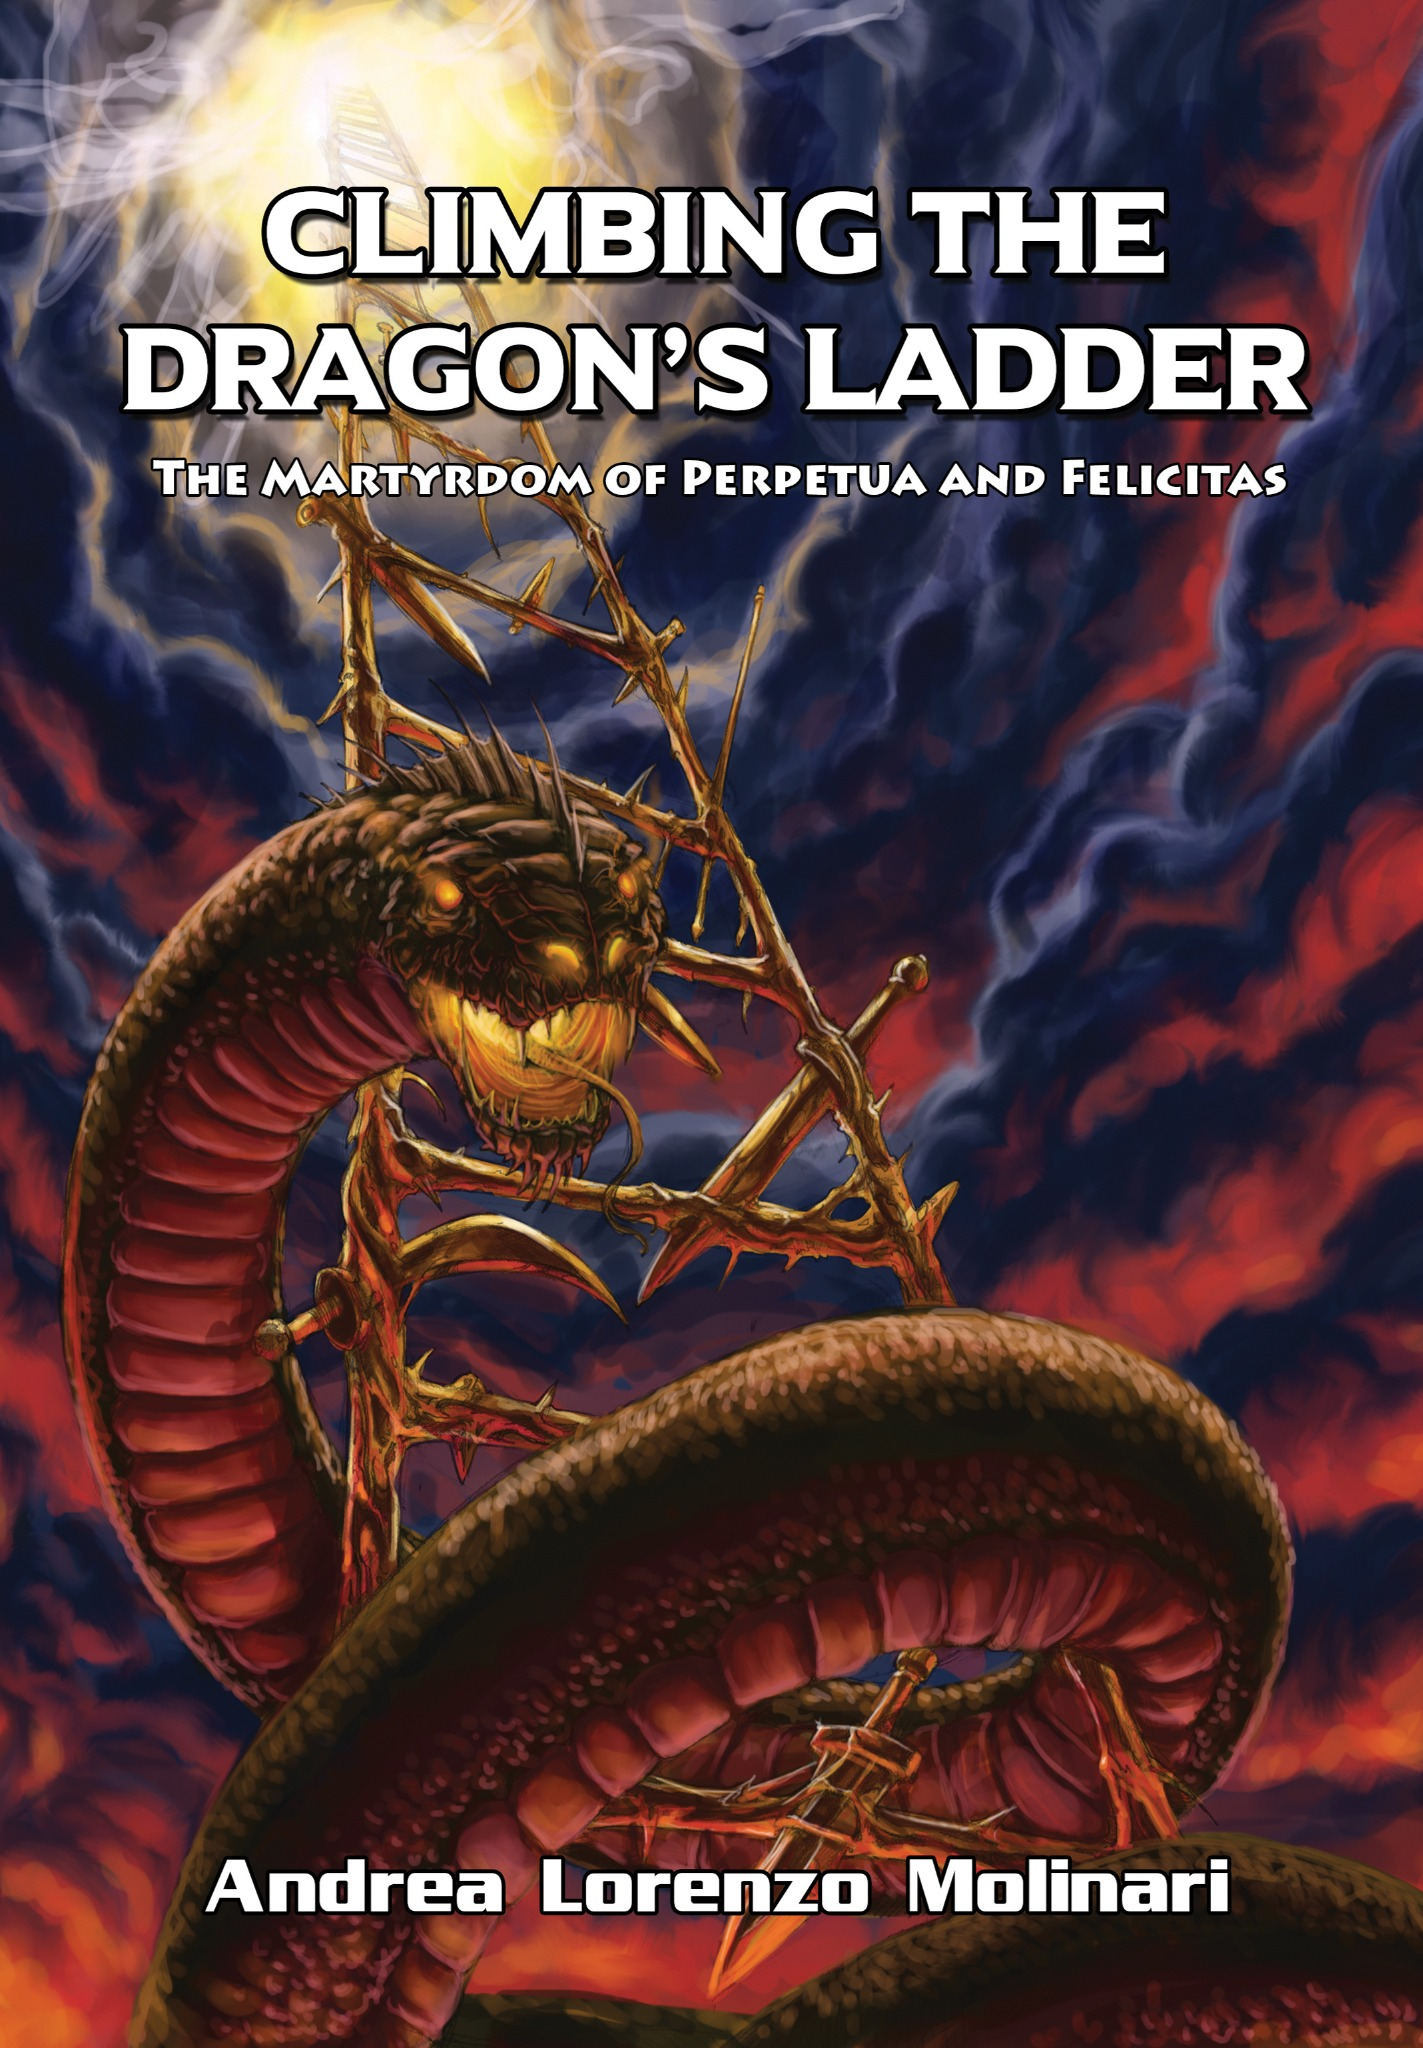 Climbing the Dragons Ladder: The Martyrdom of Perpetua and Felicitas